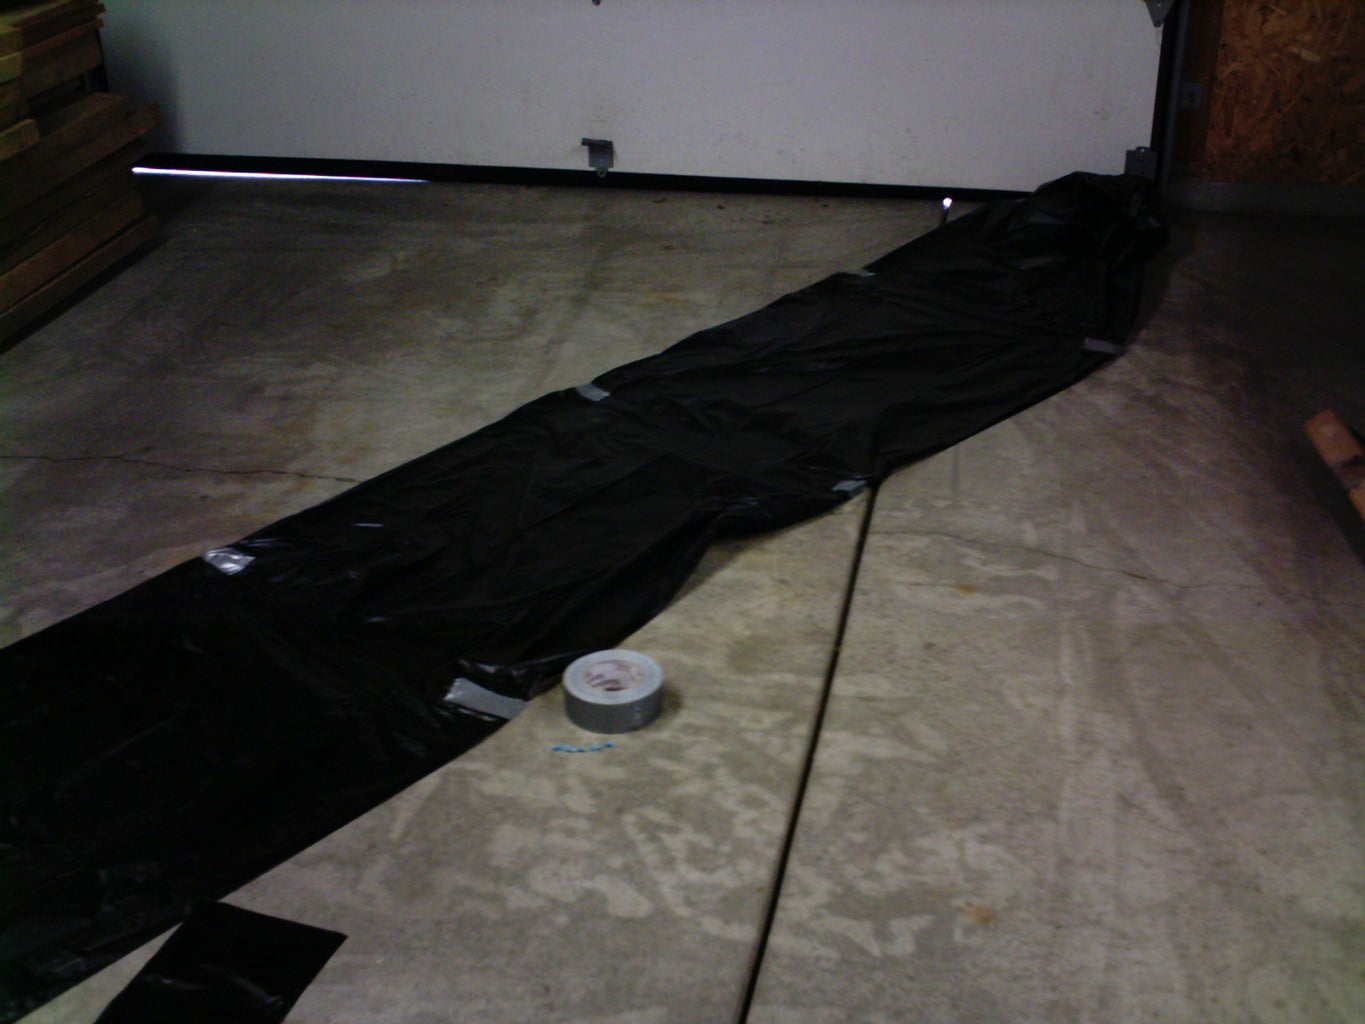 Tape the Garbage Bags